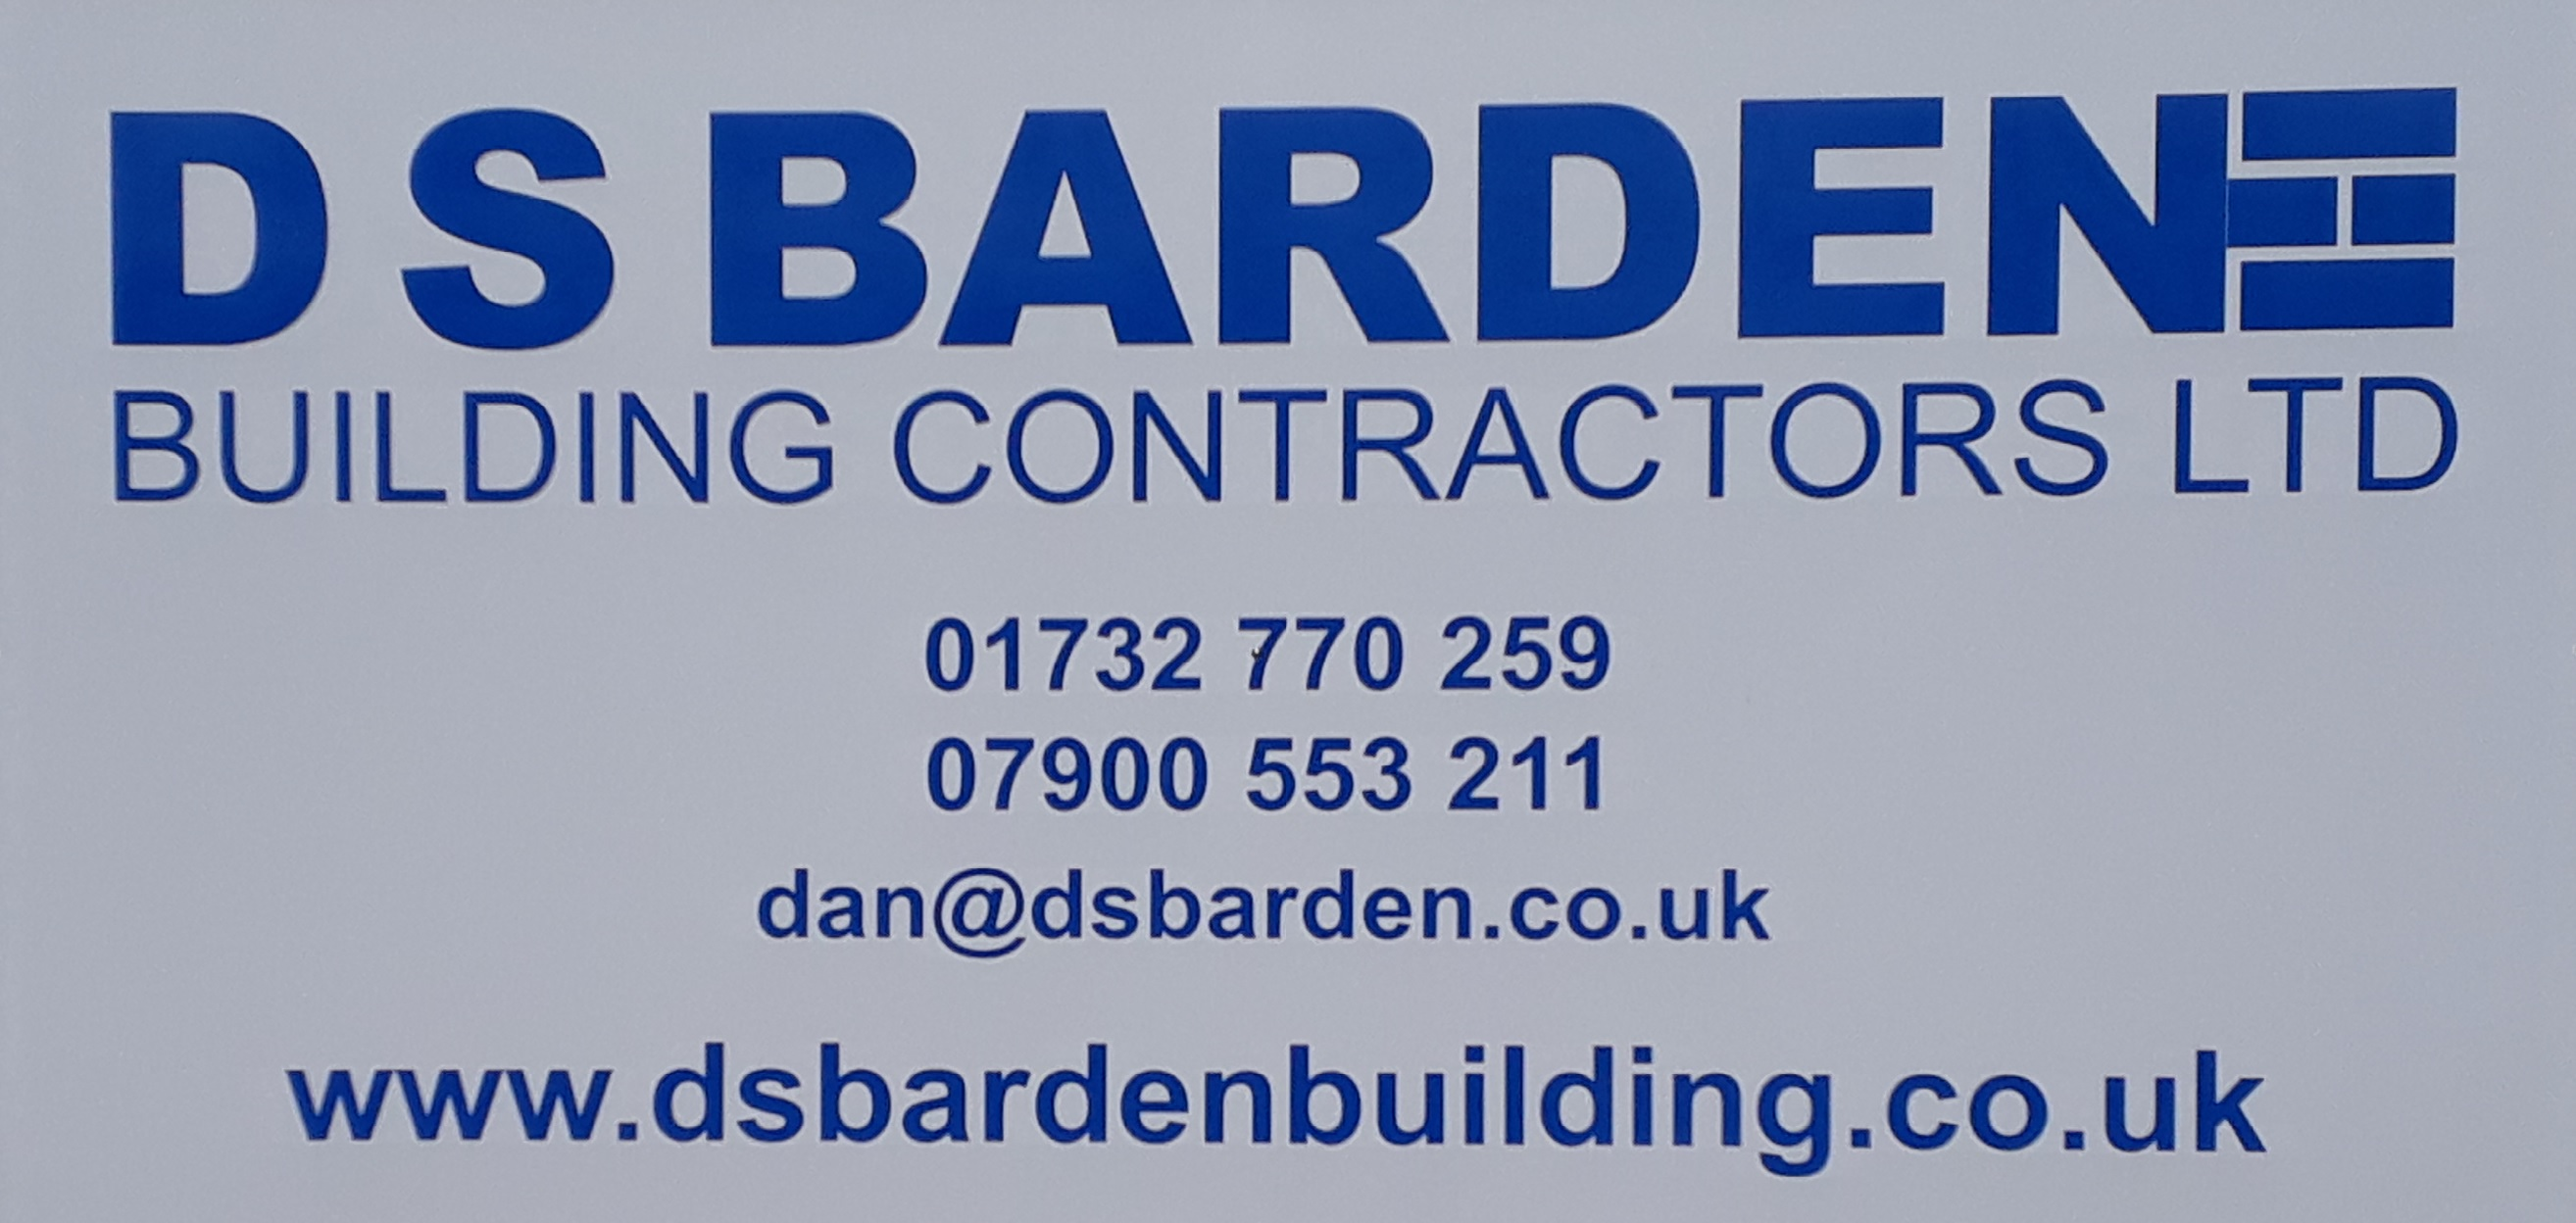 D.S. Barden Building Contractors Ltd.